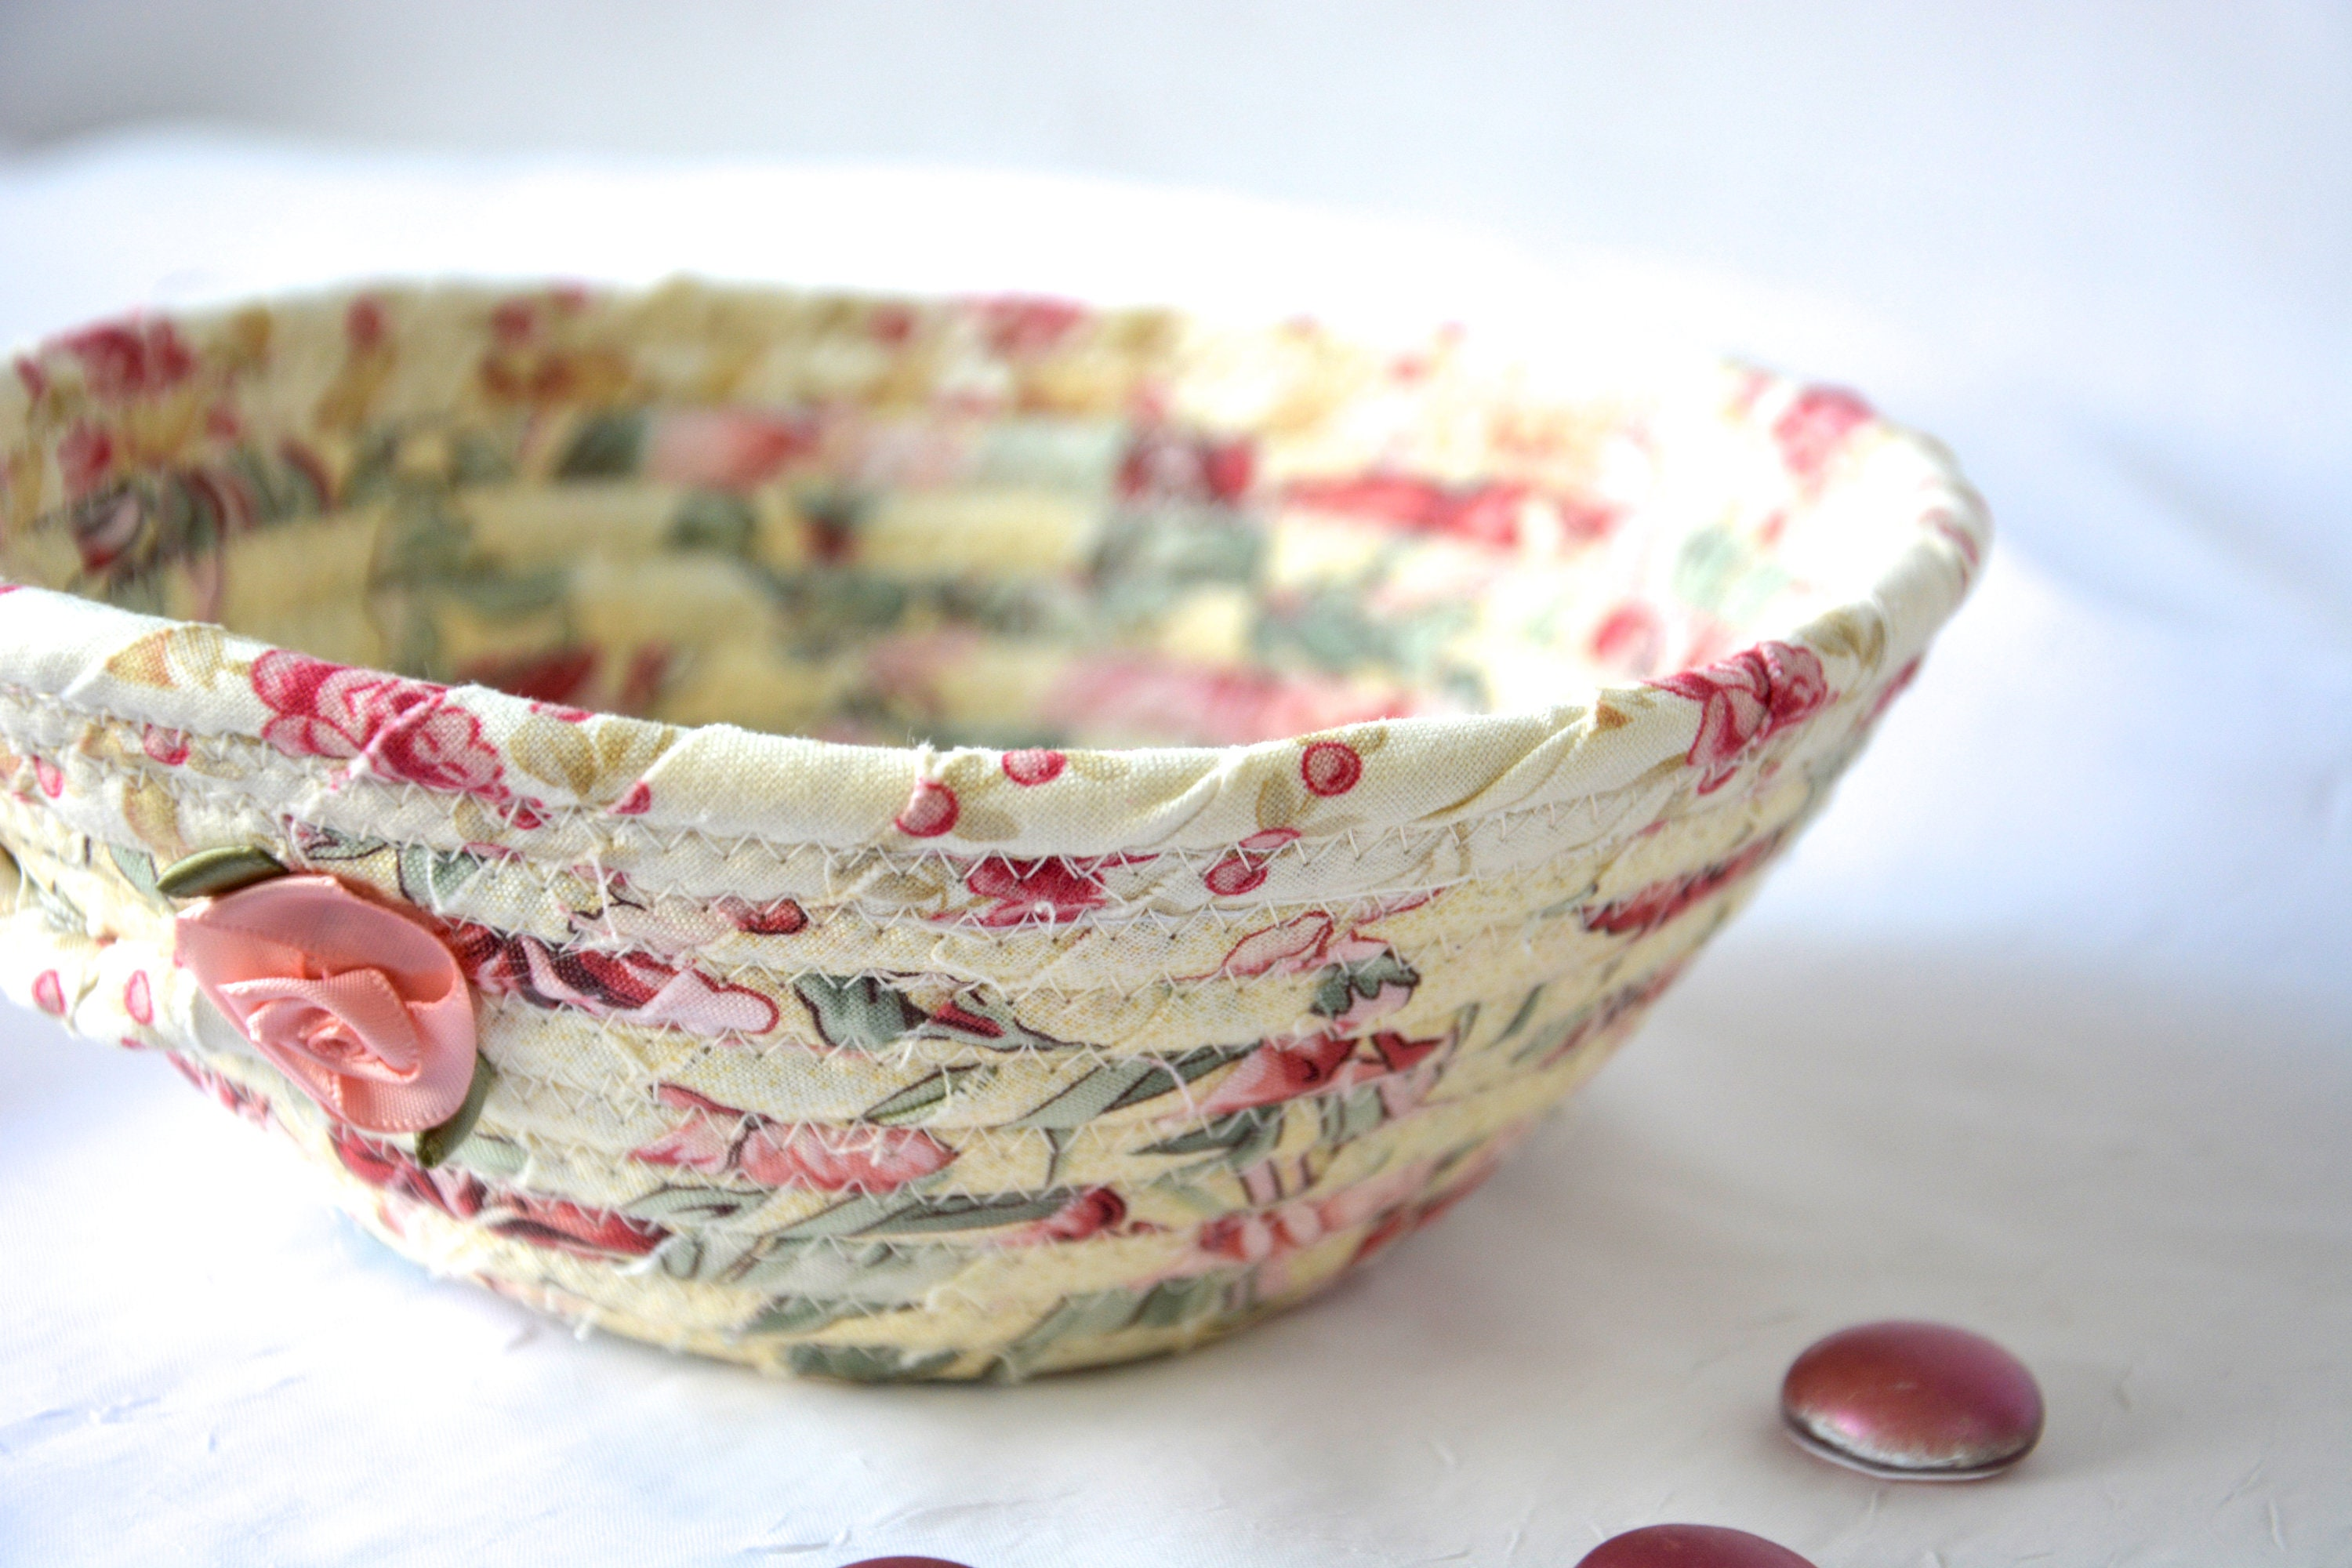 Shabby Chic Basket Handmade Pink Bowl Cute Desk Accessory English Garden Ring Dish Dresser Key Tray Potpourri Bowl,Where To Find Houses For Rent